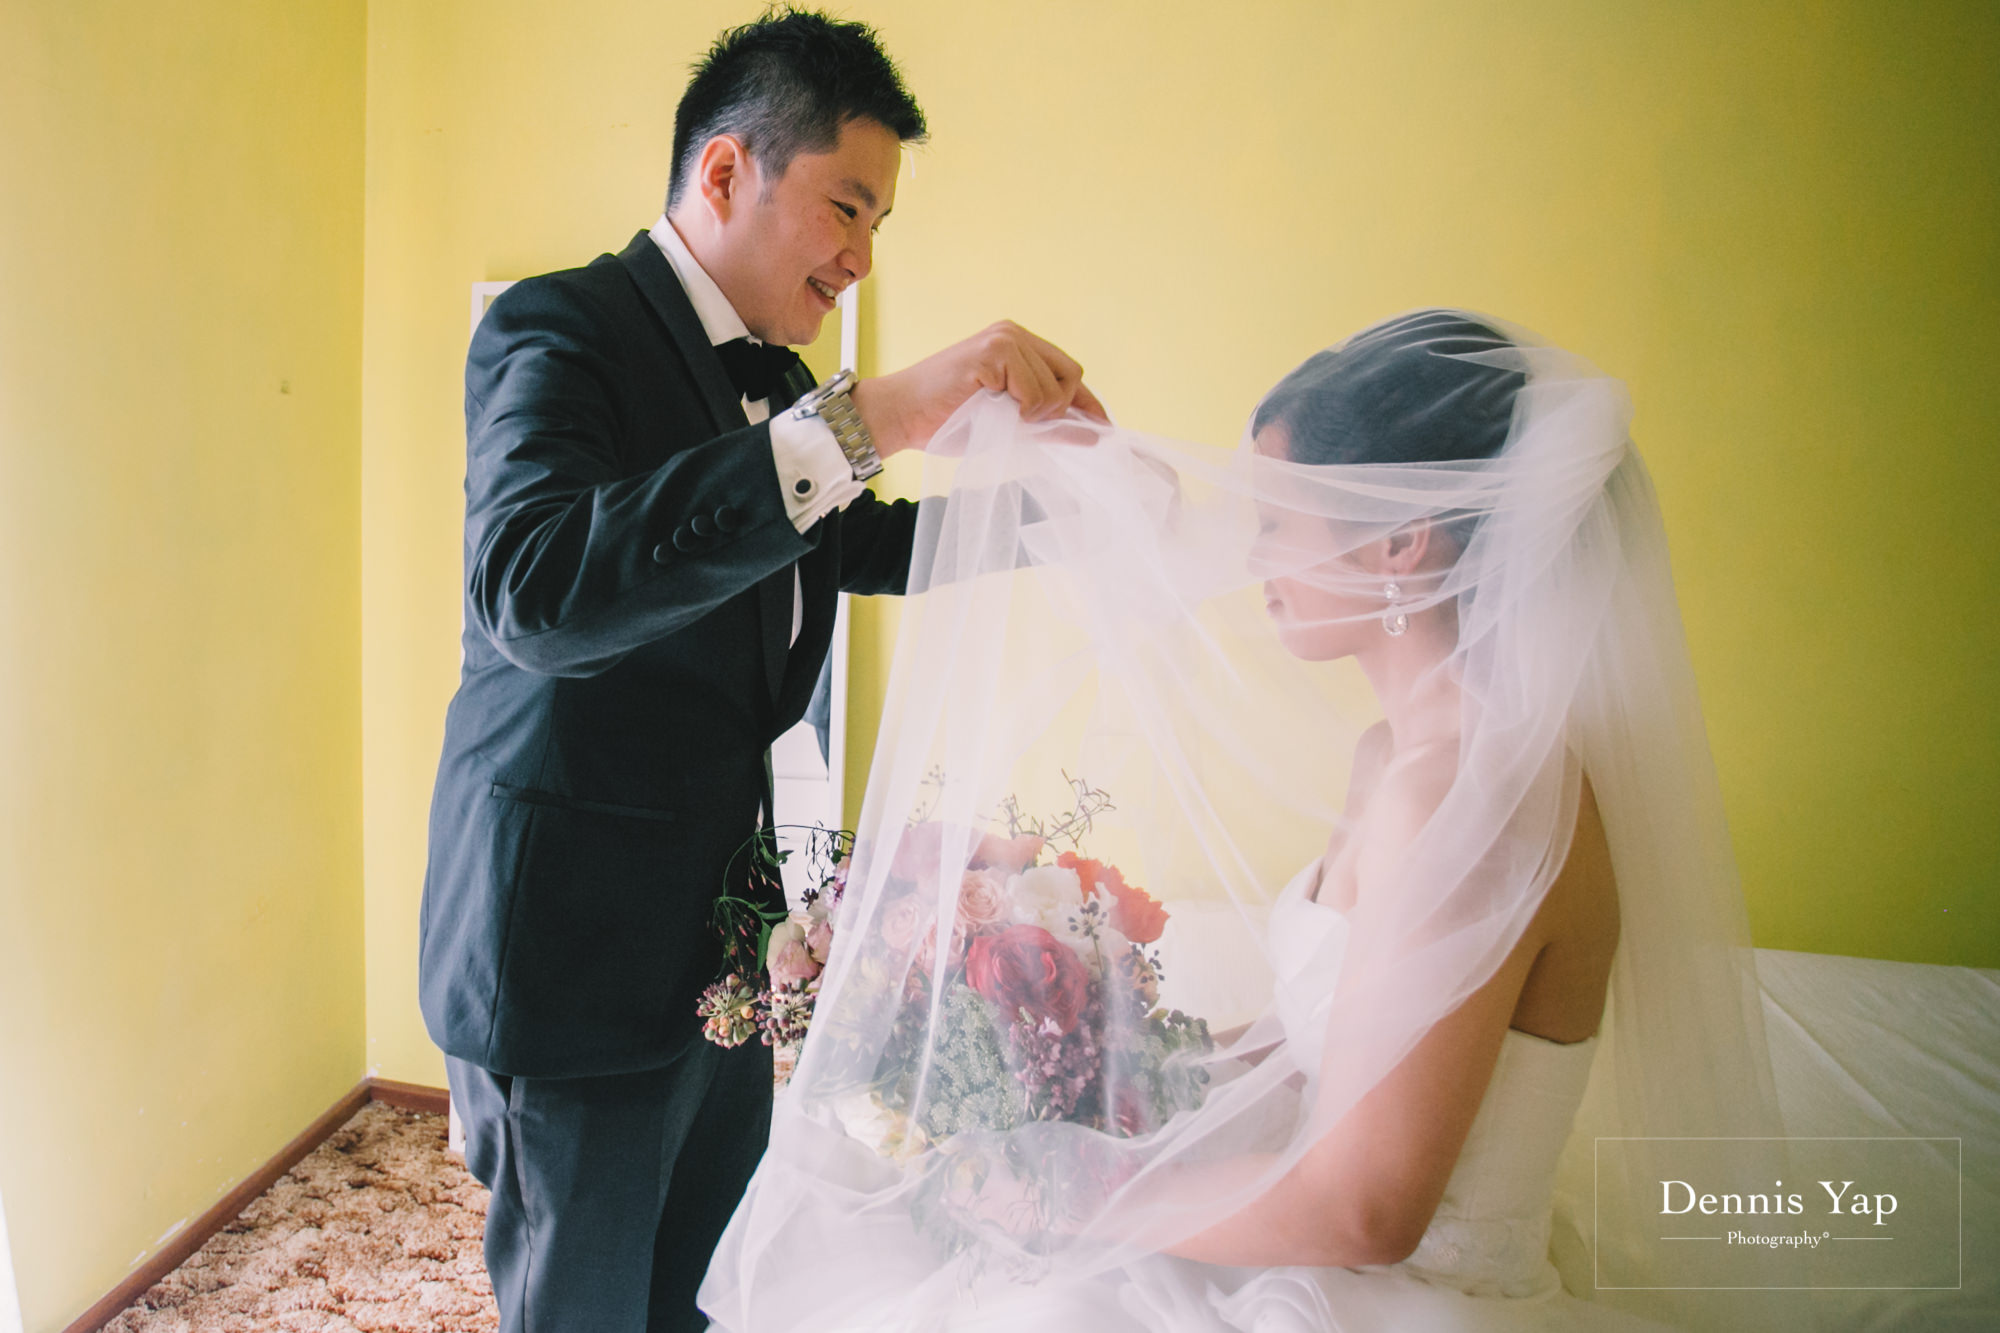 ethan janet perth wedding reception and garden ceremony in lamonts dennis yap photography-11.jpg